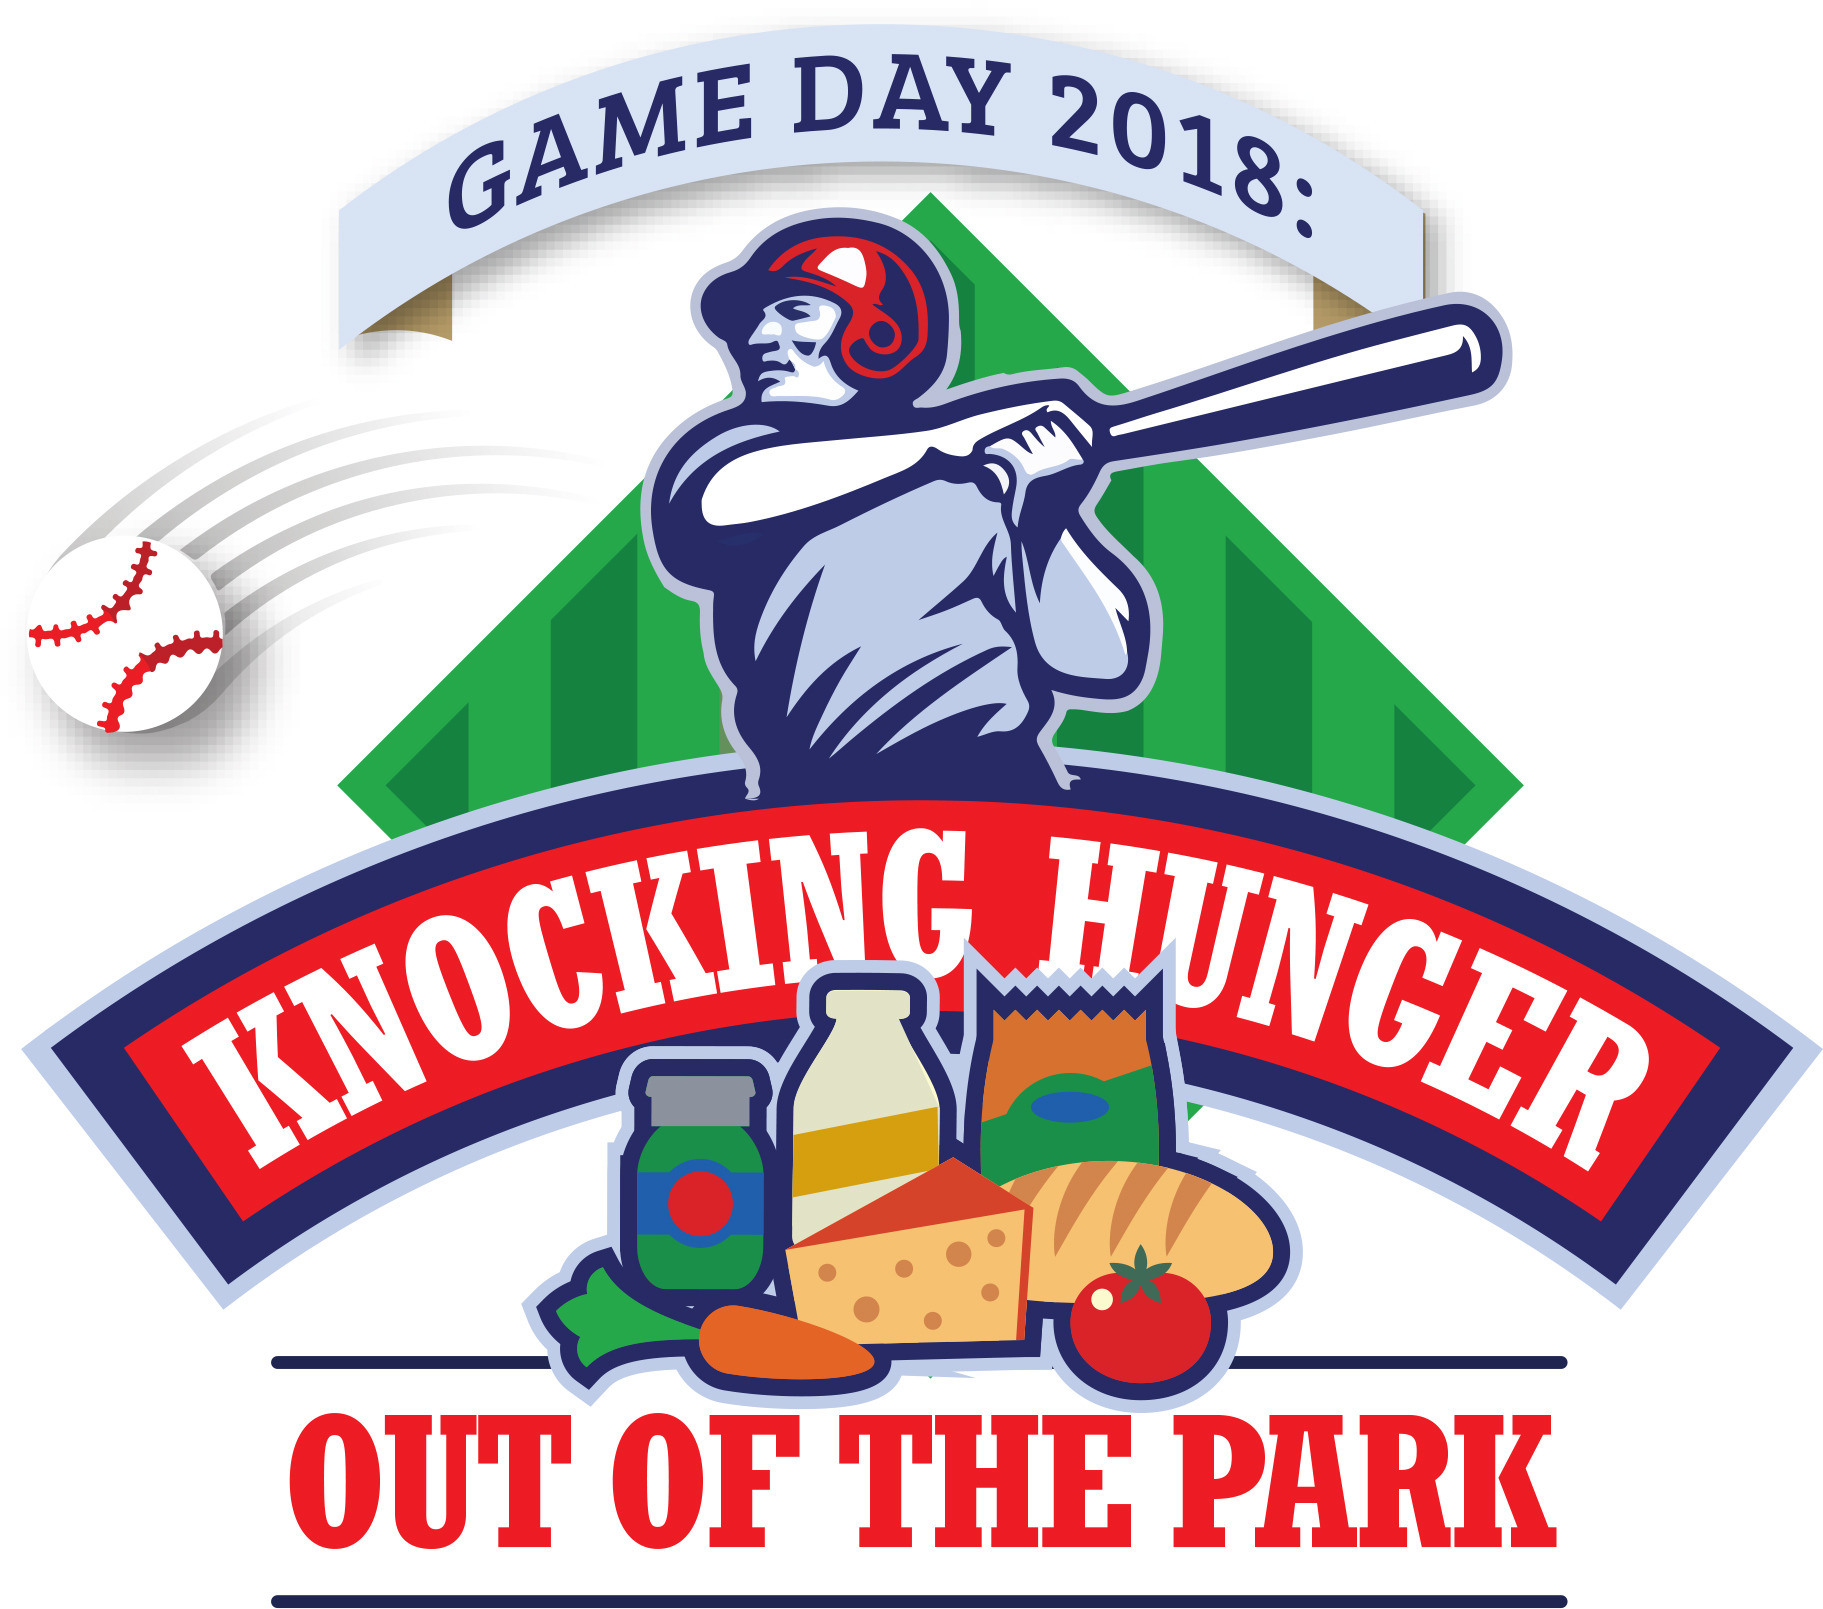 CBIZ 2018 Food Drive: We're knocking hunger out of the park in our local communities!